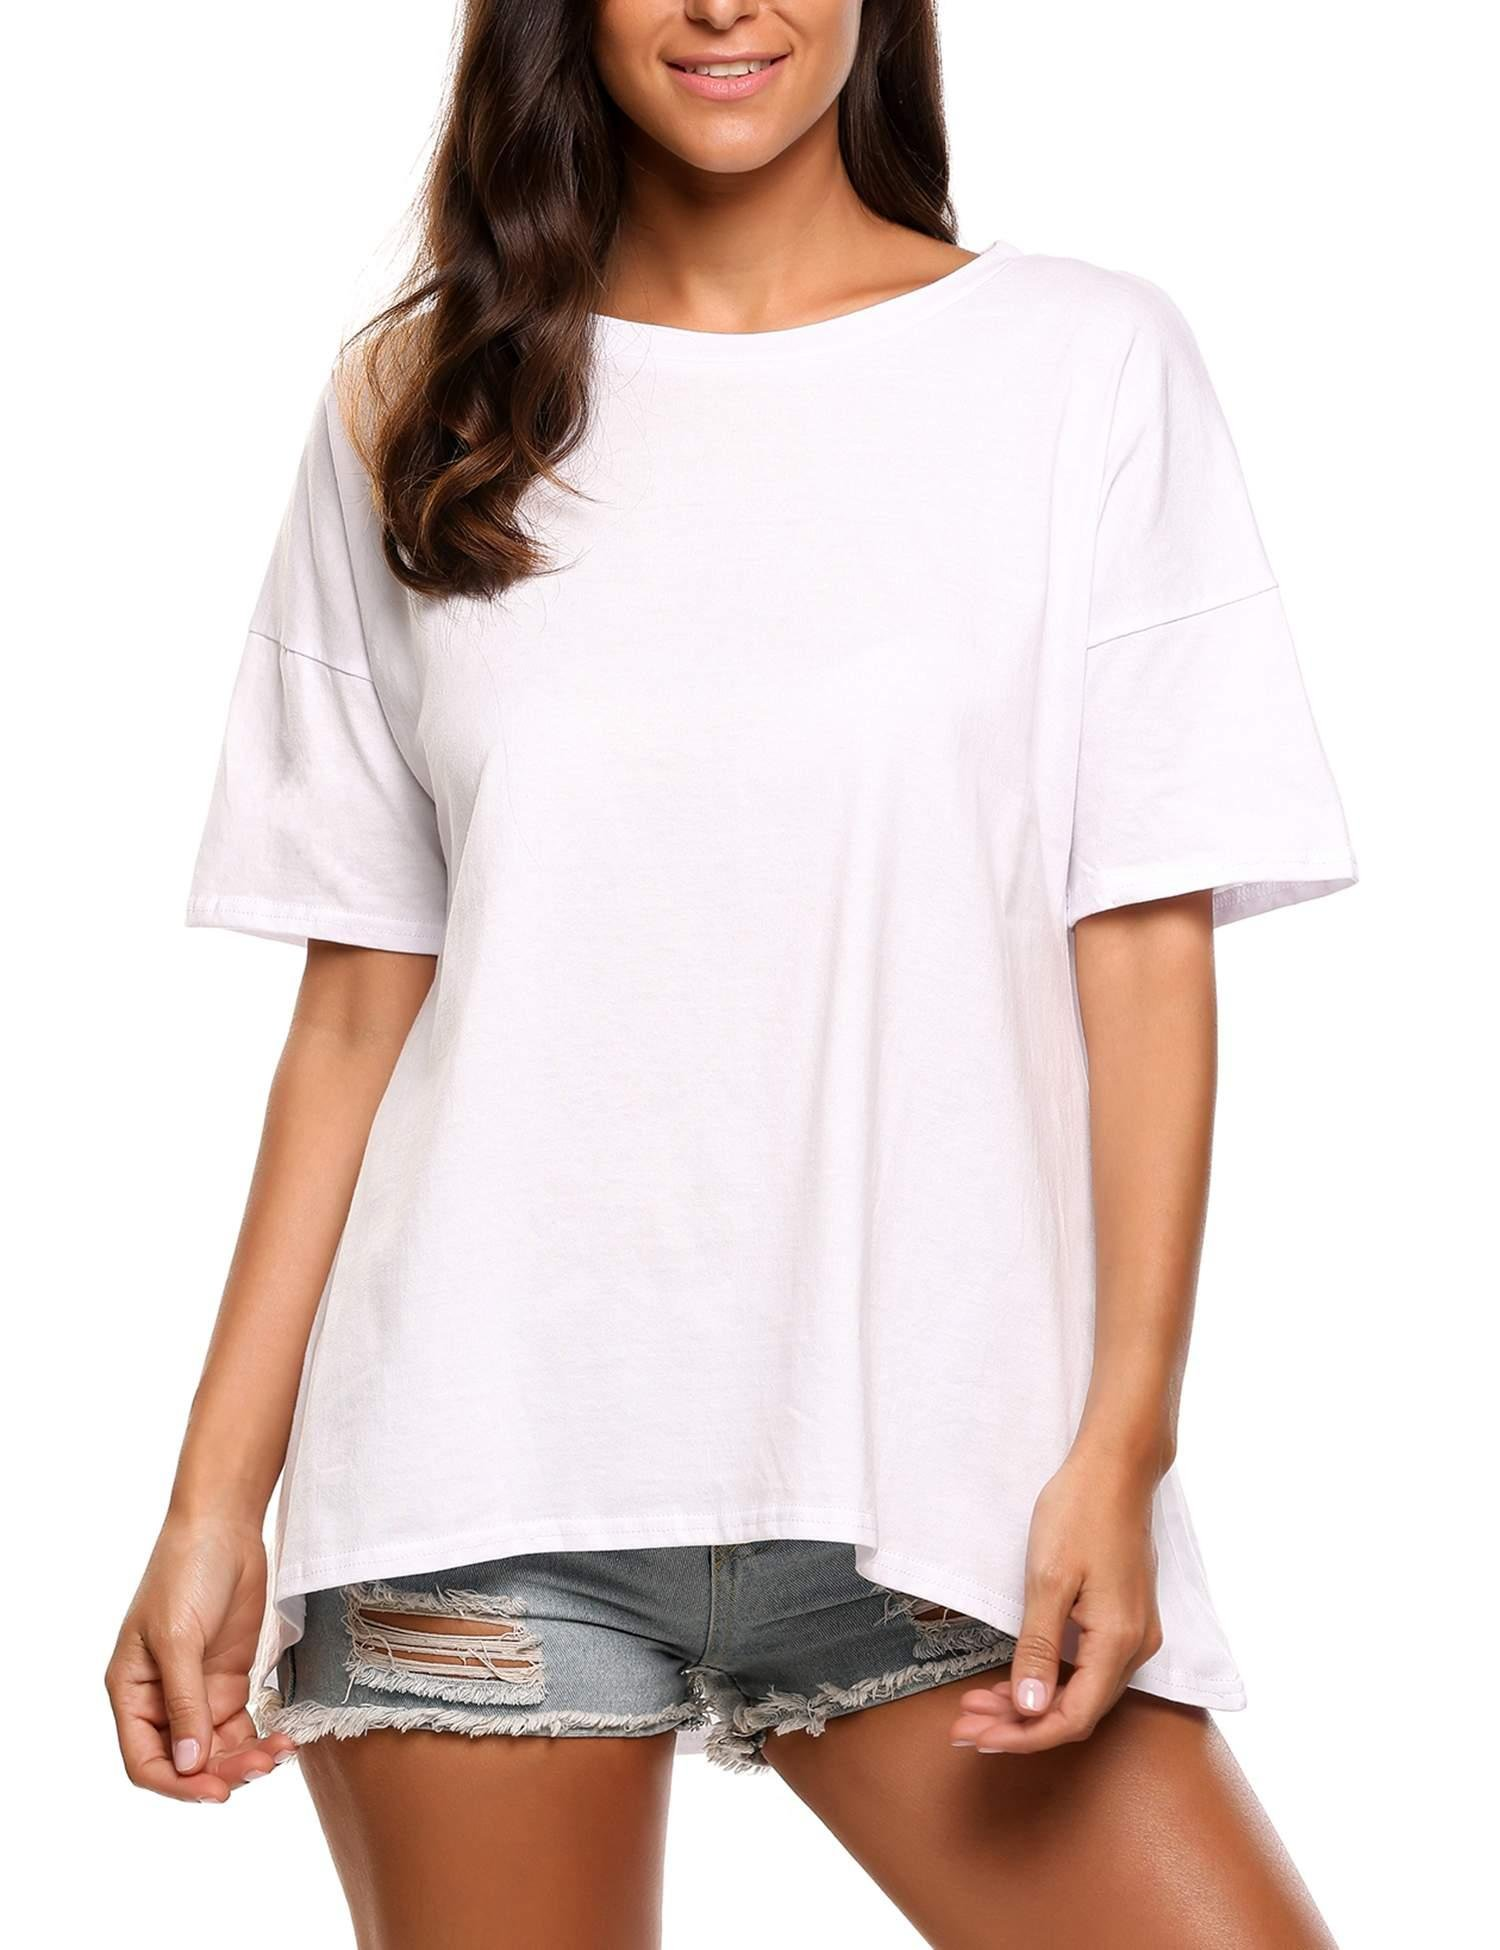 ELESOL Women's Basic Casual Shor Sleeve Crewneck Loose Fit T-Shirt Tee, White